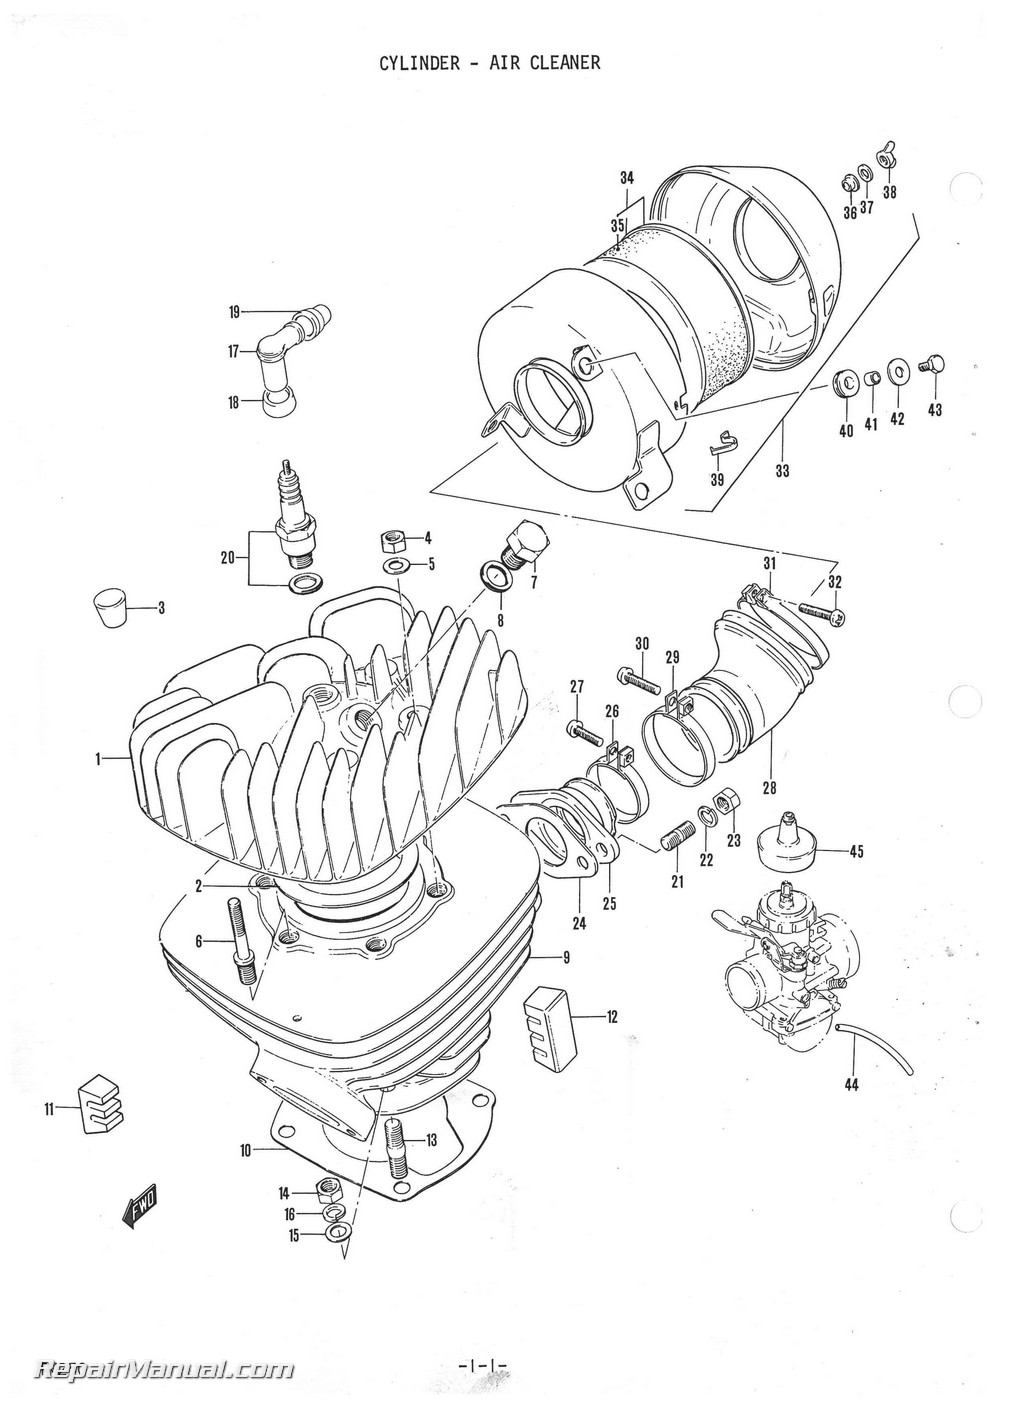 1973 Suzuki TM250 Motorcycle Parts Manual